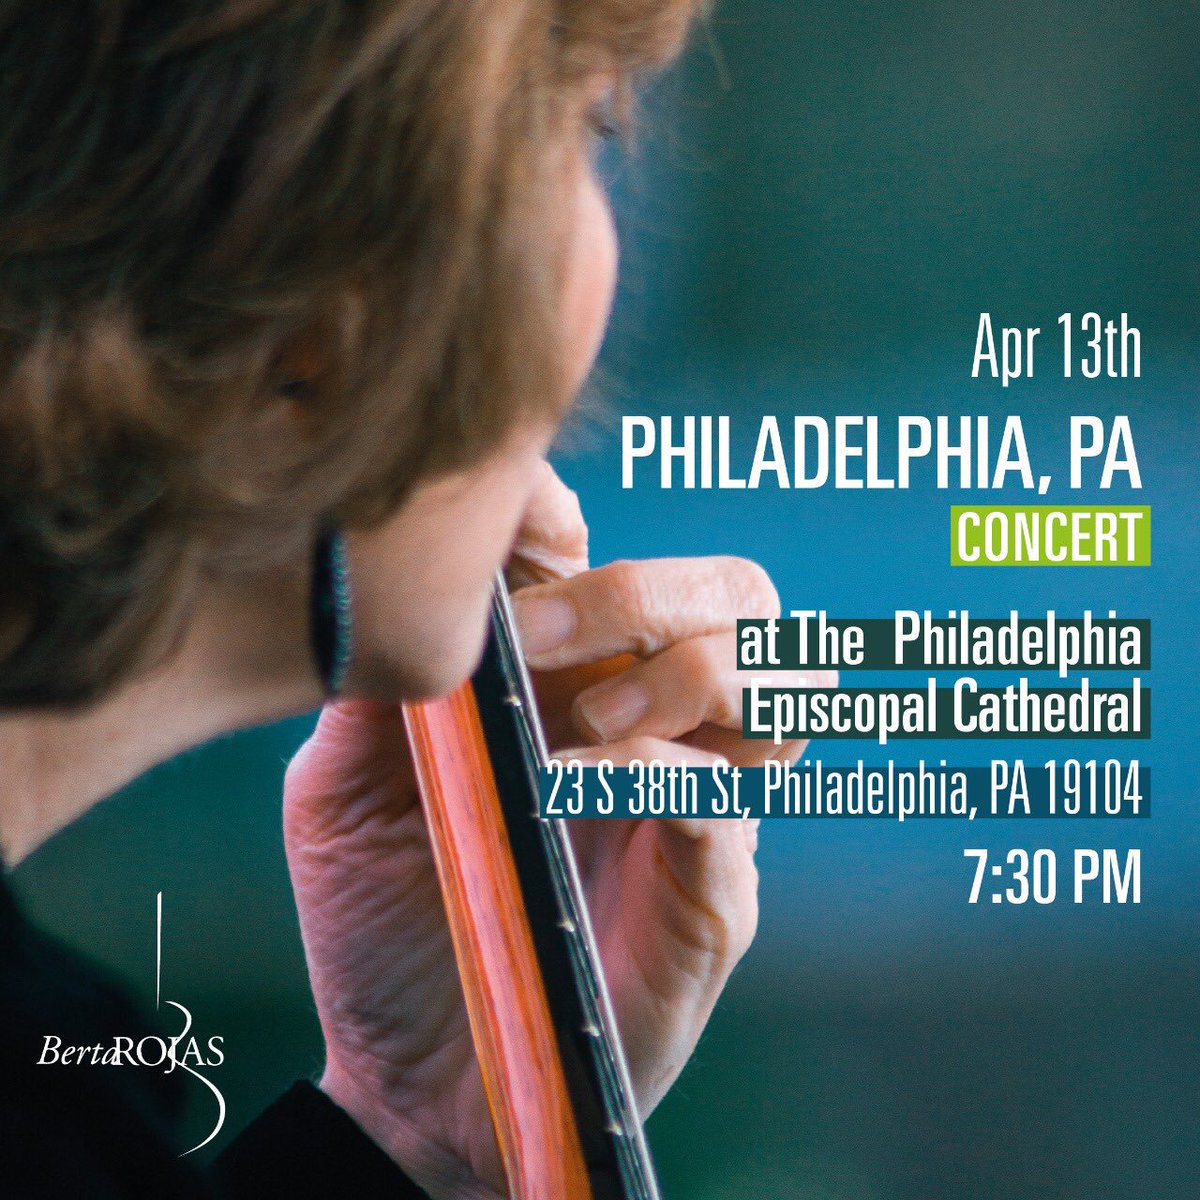 This weekend I will be visiting Philadelphia! Looking forward to it!  #classicalguitar #lifeontheroad #music #paraguay #philadelphia #lifeisgood